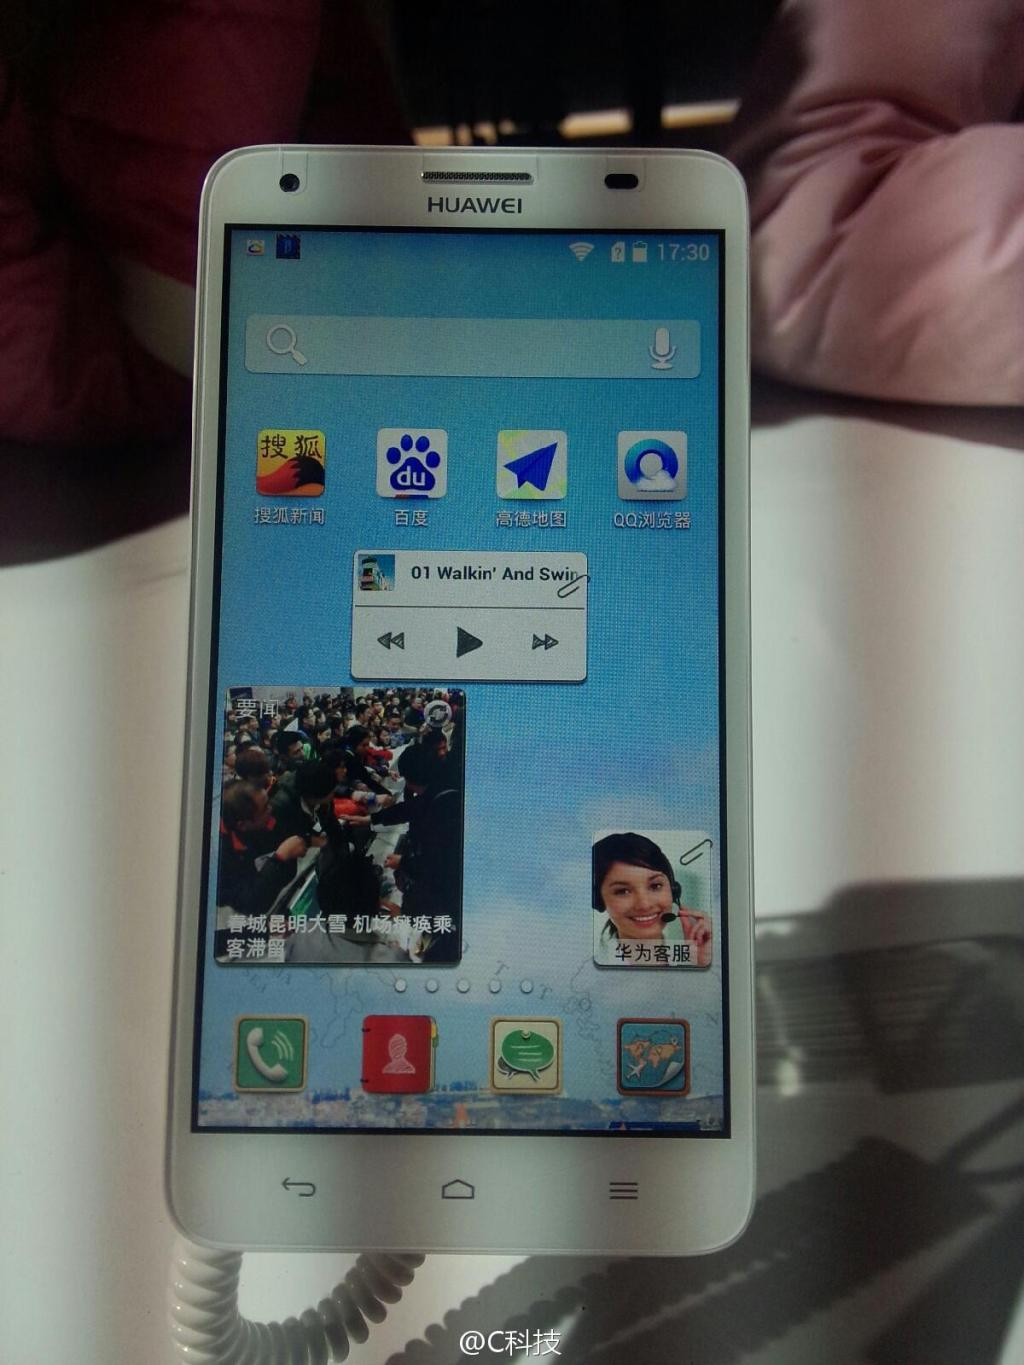 1387212054_huawei-glory-3x-unveiled-as-the-companys-first-octa-core-phone-5.jpg